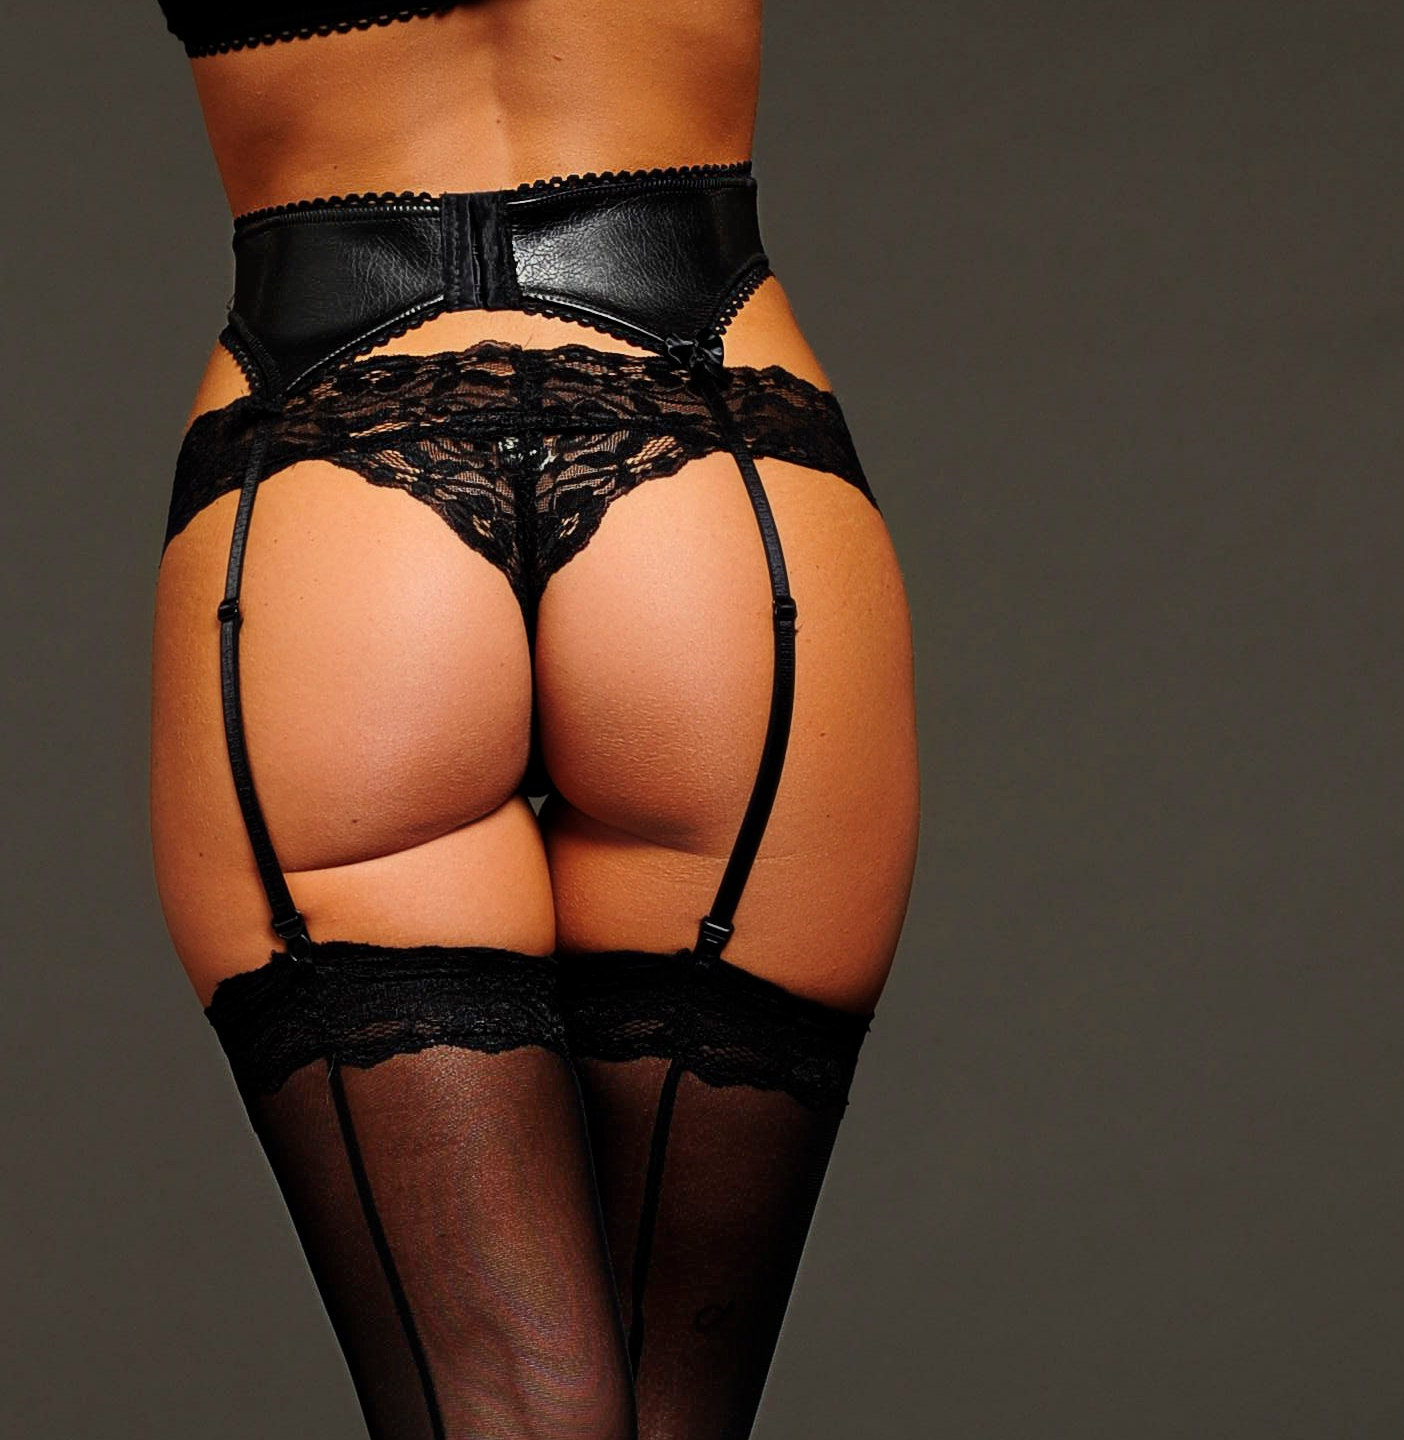 Free porn: Black/Ebony: Lingerie, Stockings, Lingerie Solo, Panties, Dress, Lingerie Milf and much more.